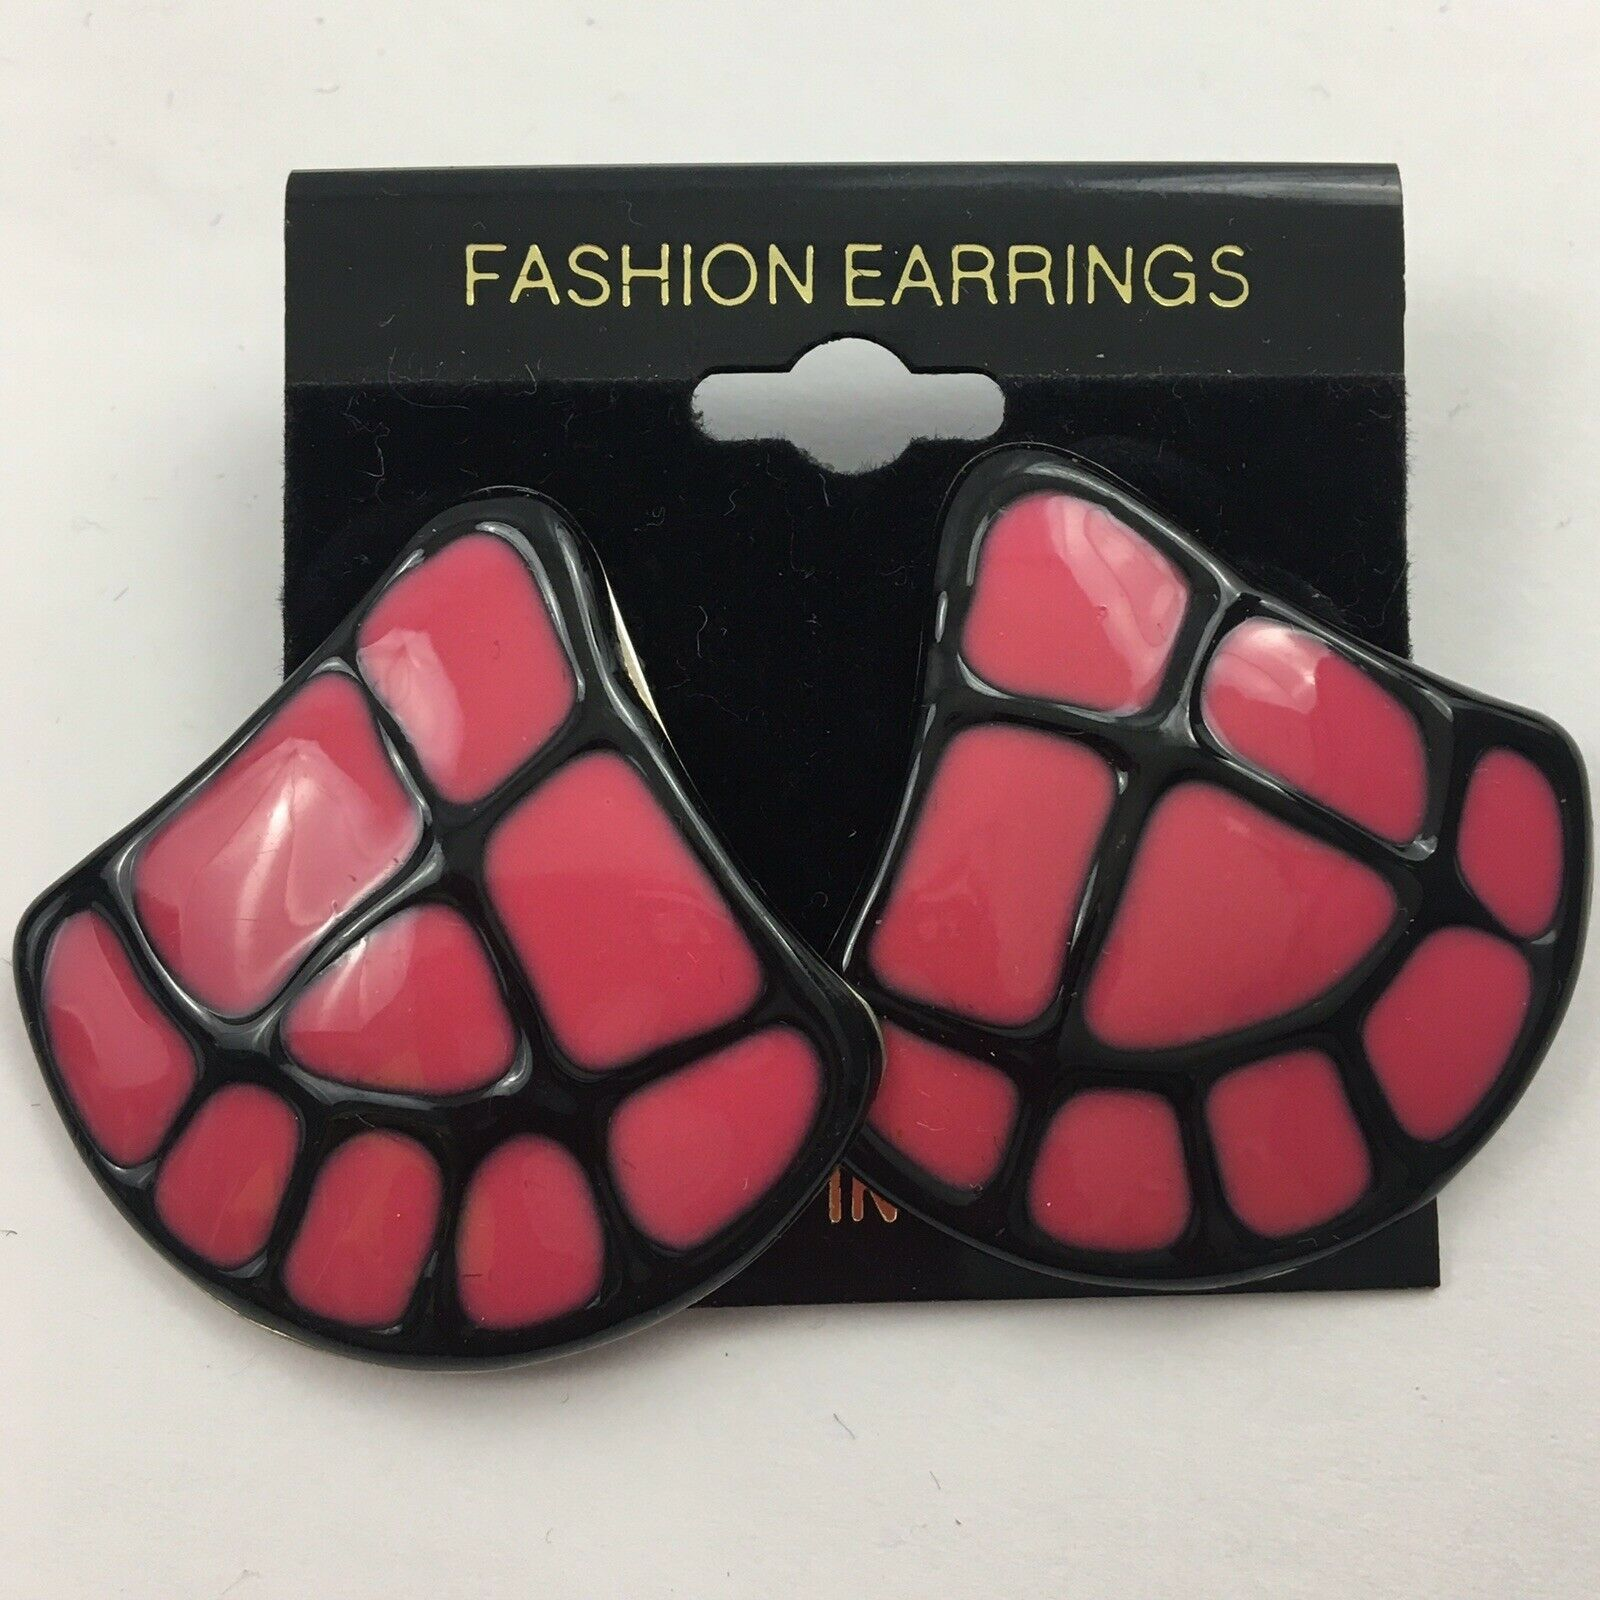 Primary image for Vintage Large Paw Print Footprint Earrings Unusual Tribal Style Unique Big Pink